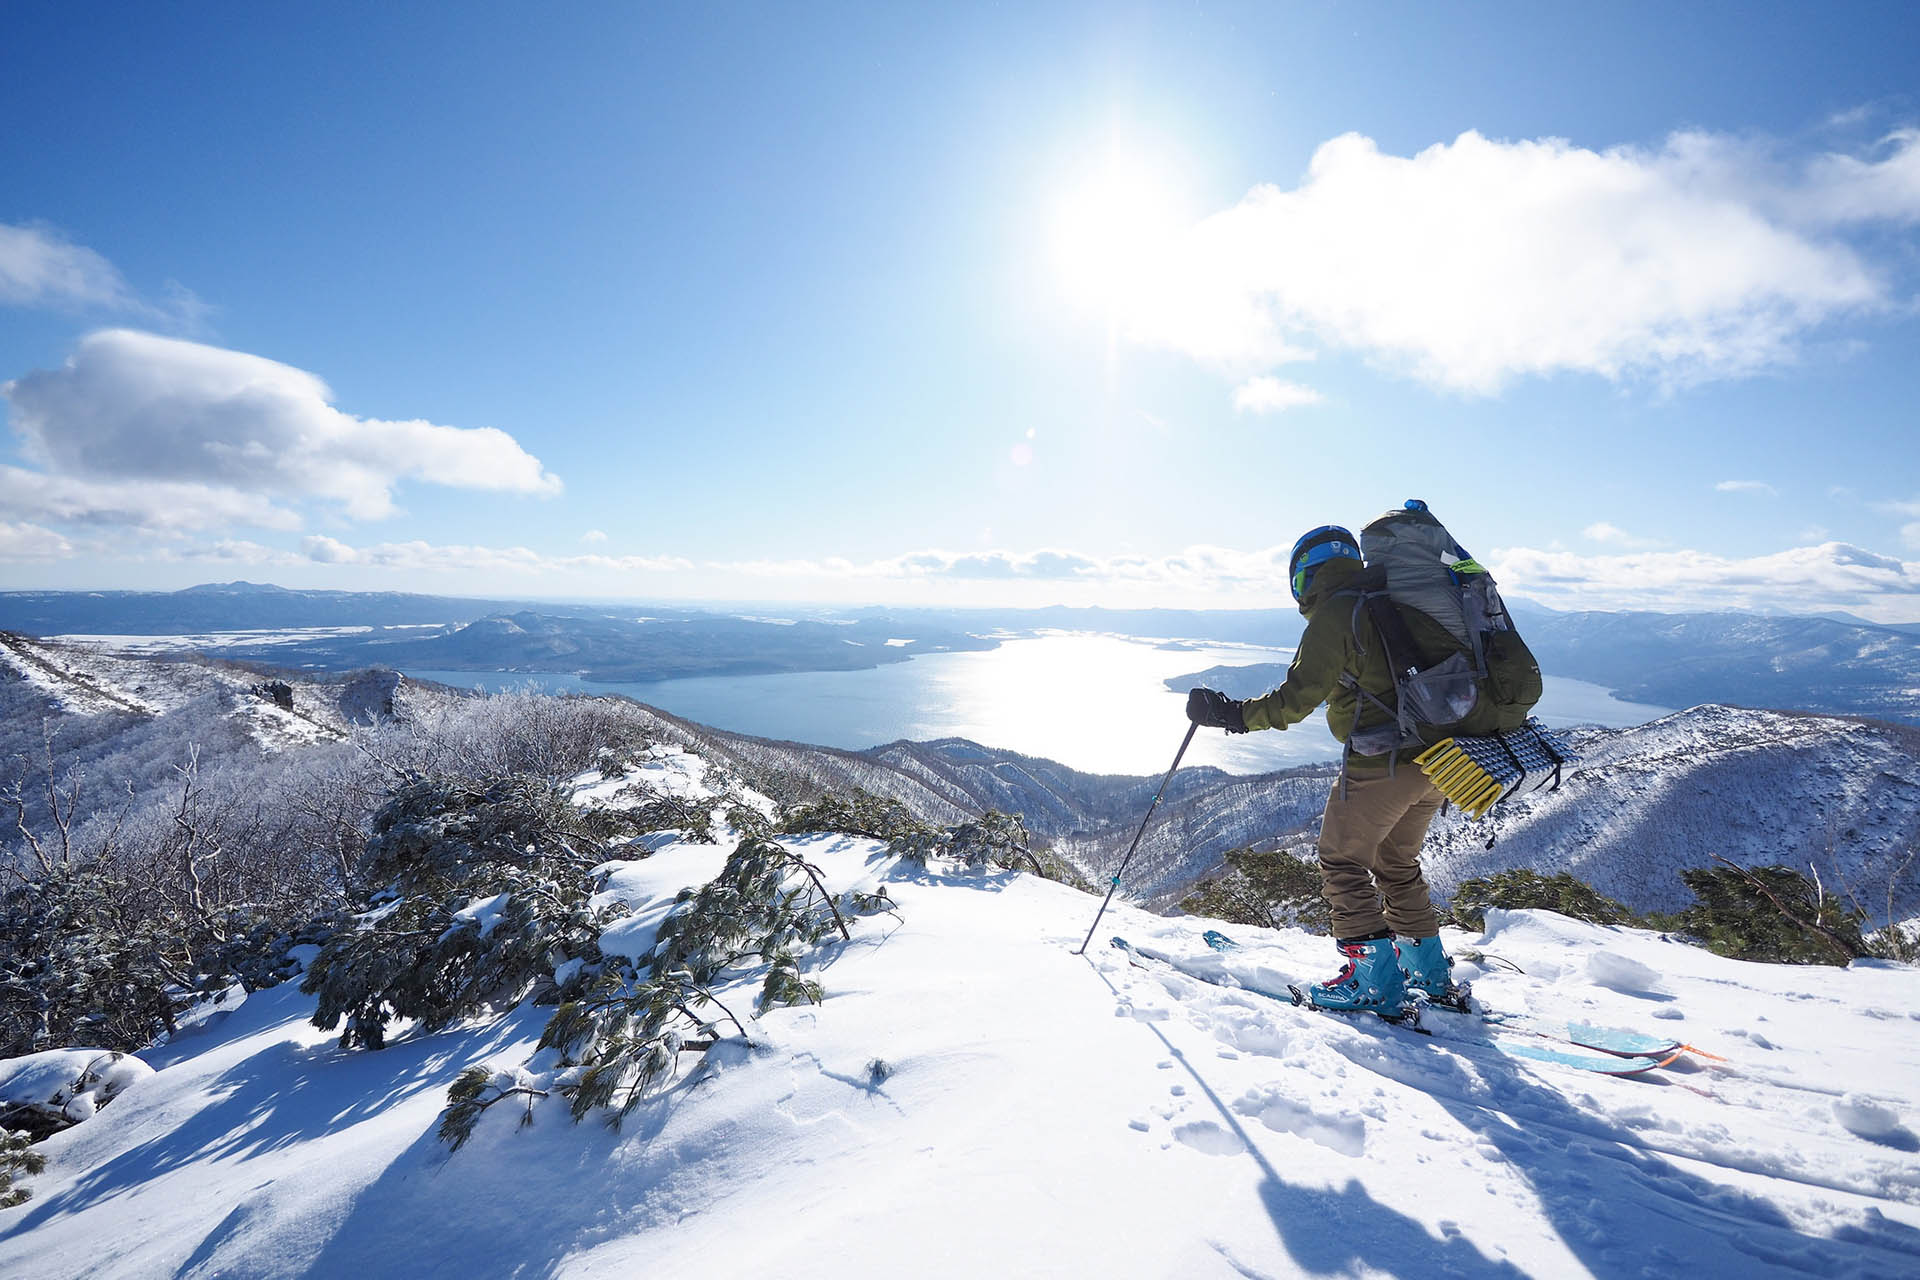 e5be3670b6 Backcountry enthusiasts local to the island prefecture have enjoyed and  established these trails for many years